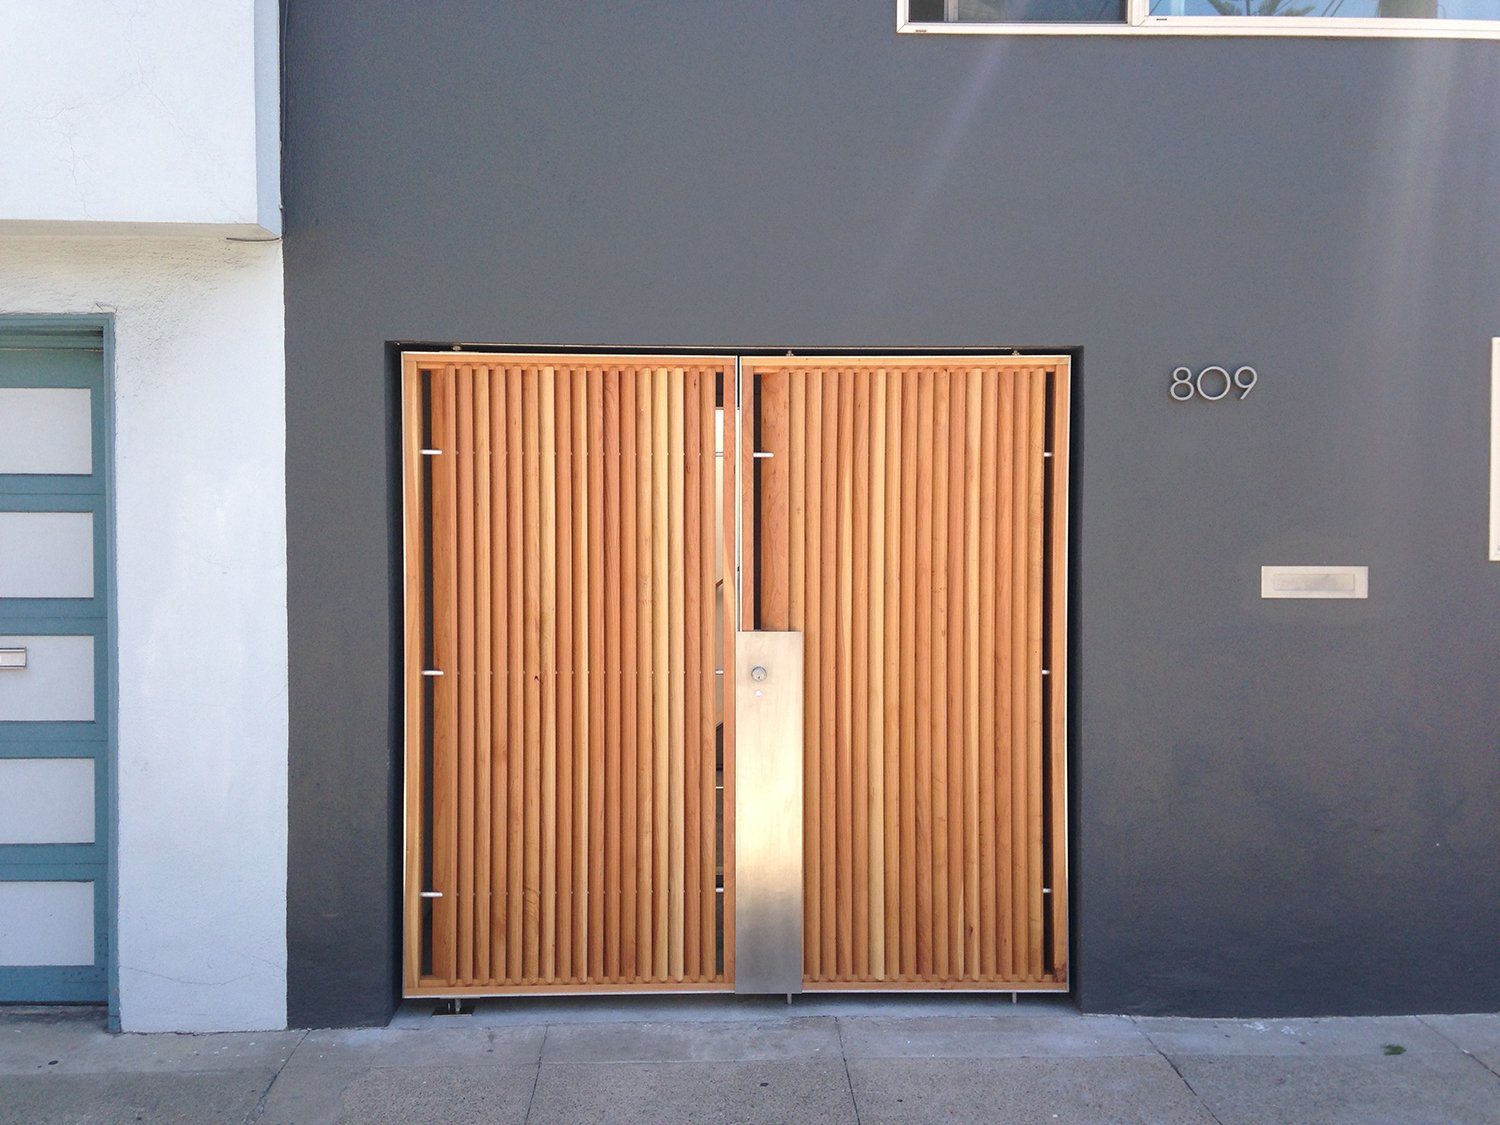 Doors, Wood, Exterior, and Swing Door Type The focal point of the home's modernized exterior is a custom, wood-and-steel entry gate designed by atelier KS and built by DeFauw Design + Fabrication, a local fabricator who also made custom closing hardware for the piece. Franz and Paré-Mayer paired angled cypress slats with an industrial metal frame to create the entryway. A few paces behind the gate, a large glass door provides direct access to the home, fulfilling the owners' wish for an entry vestibule that would be separate from the street. The angled wood slats offer privacy from the exterior, while selectively allowing light to penetrate through.  KS Mission by Sarah Akkoush